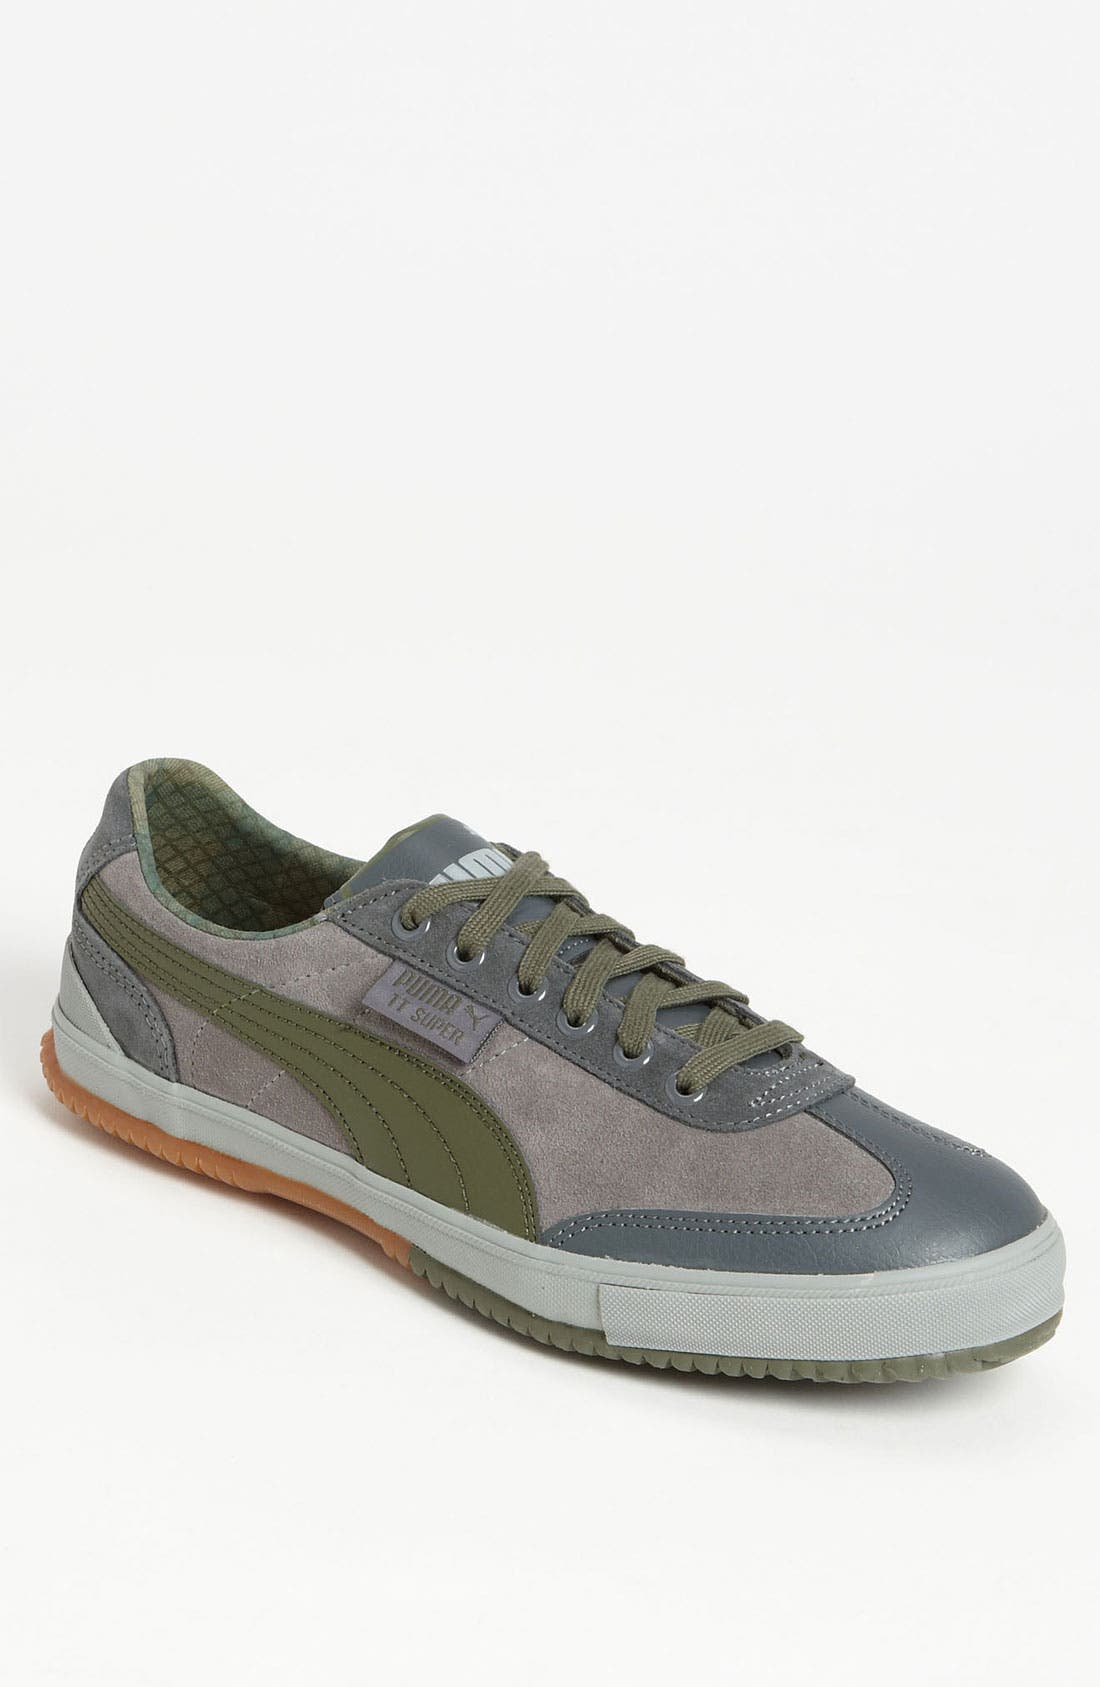 Alternate Image 1 Selected - PUMA 'TT Super LS' Sneaker (Men)